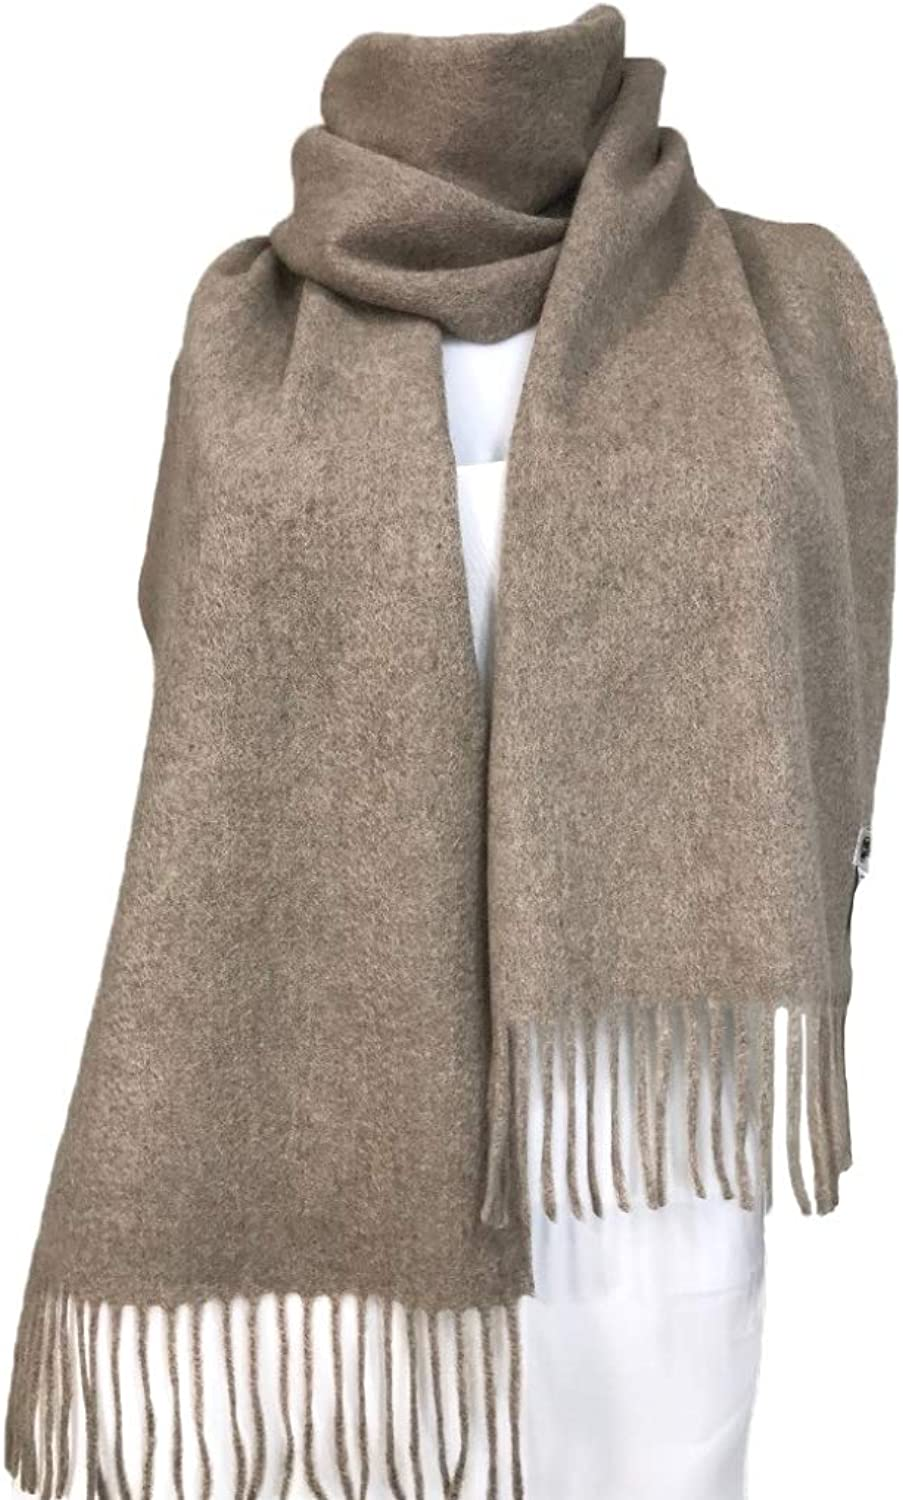 Cashmere Long Scarf, 100% Cashmere, Gorgeous and Natural, K0102 (Milkcoffee)